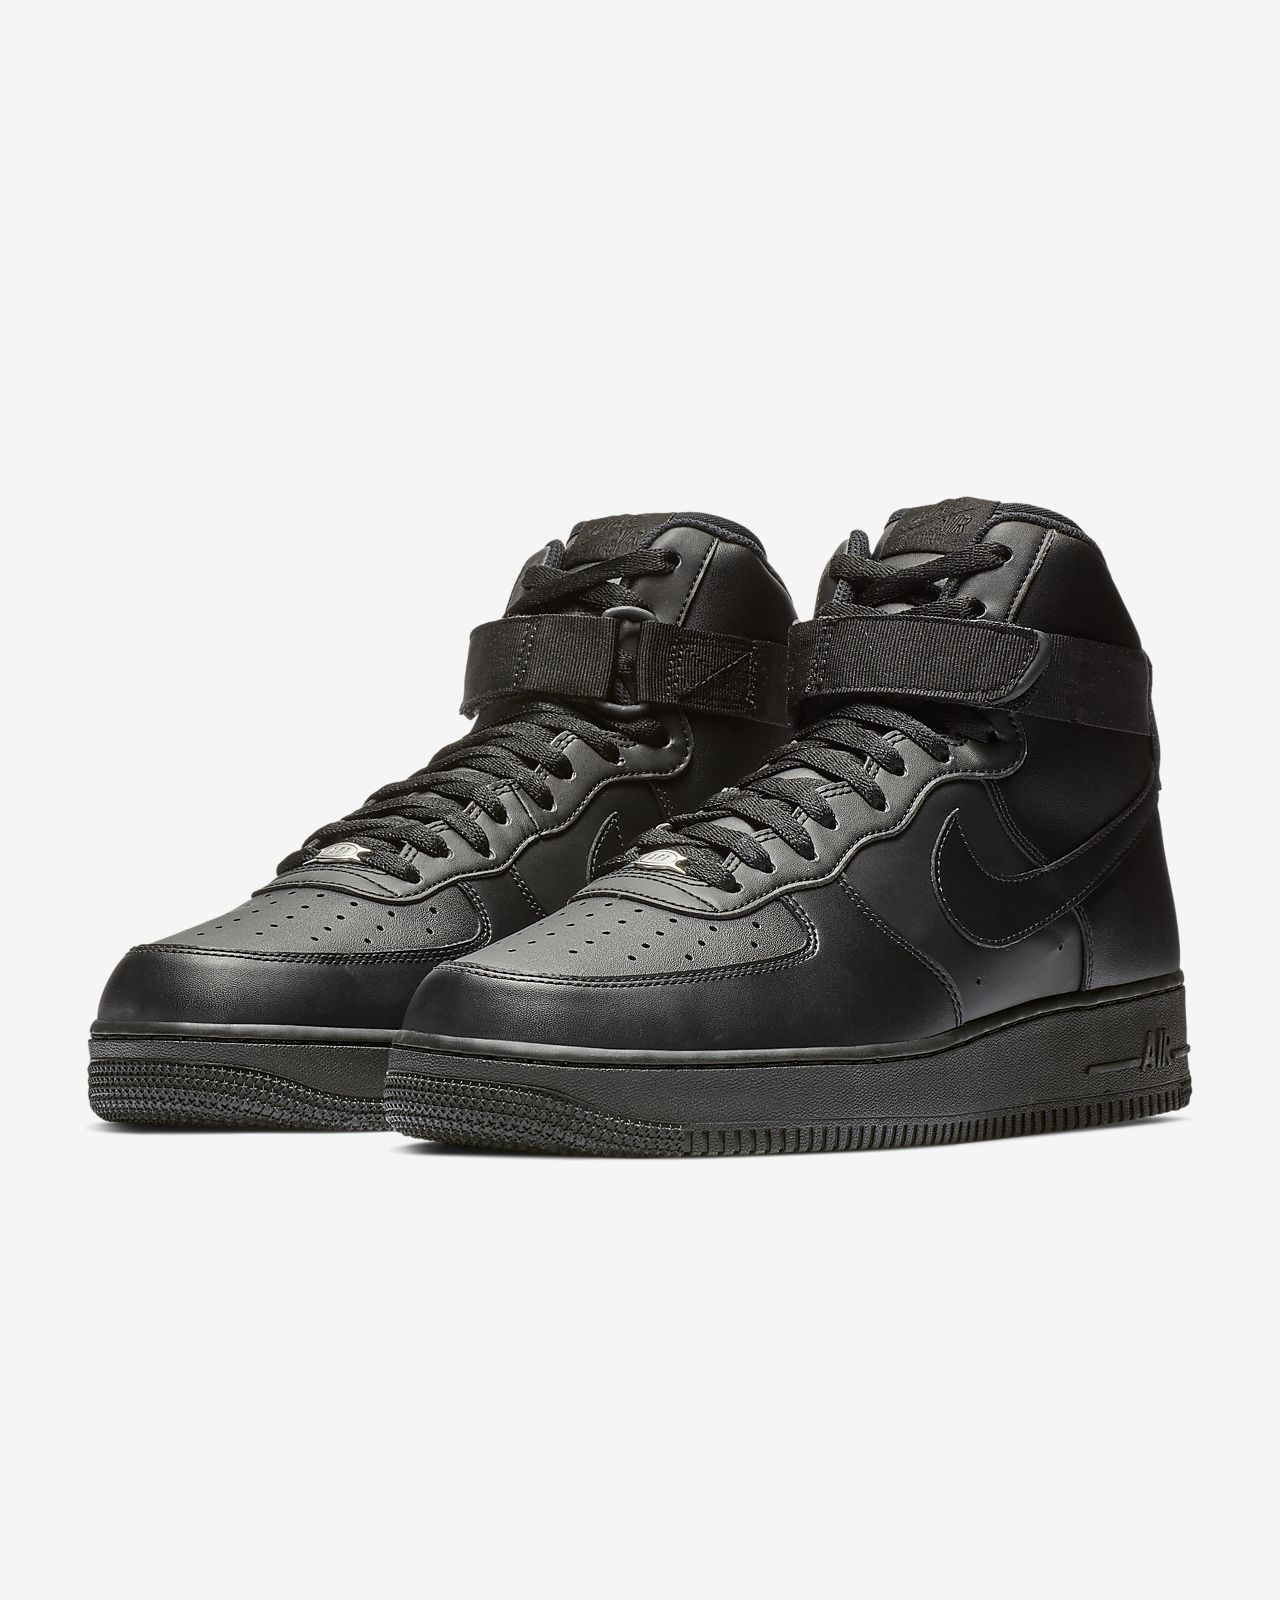 52 Best Air Force 1 High images | Air force 1 high, Air